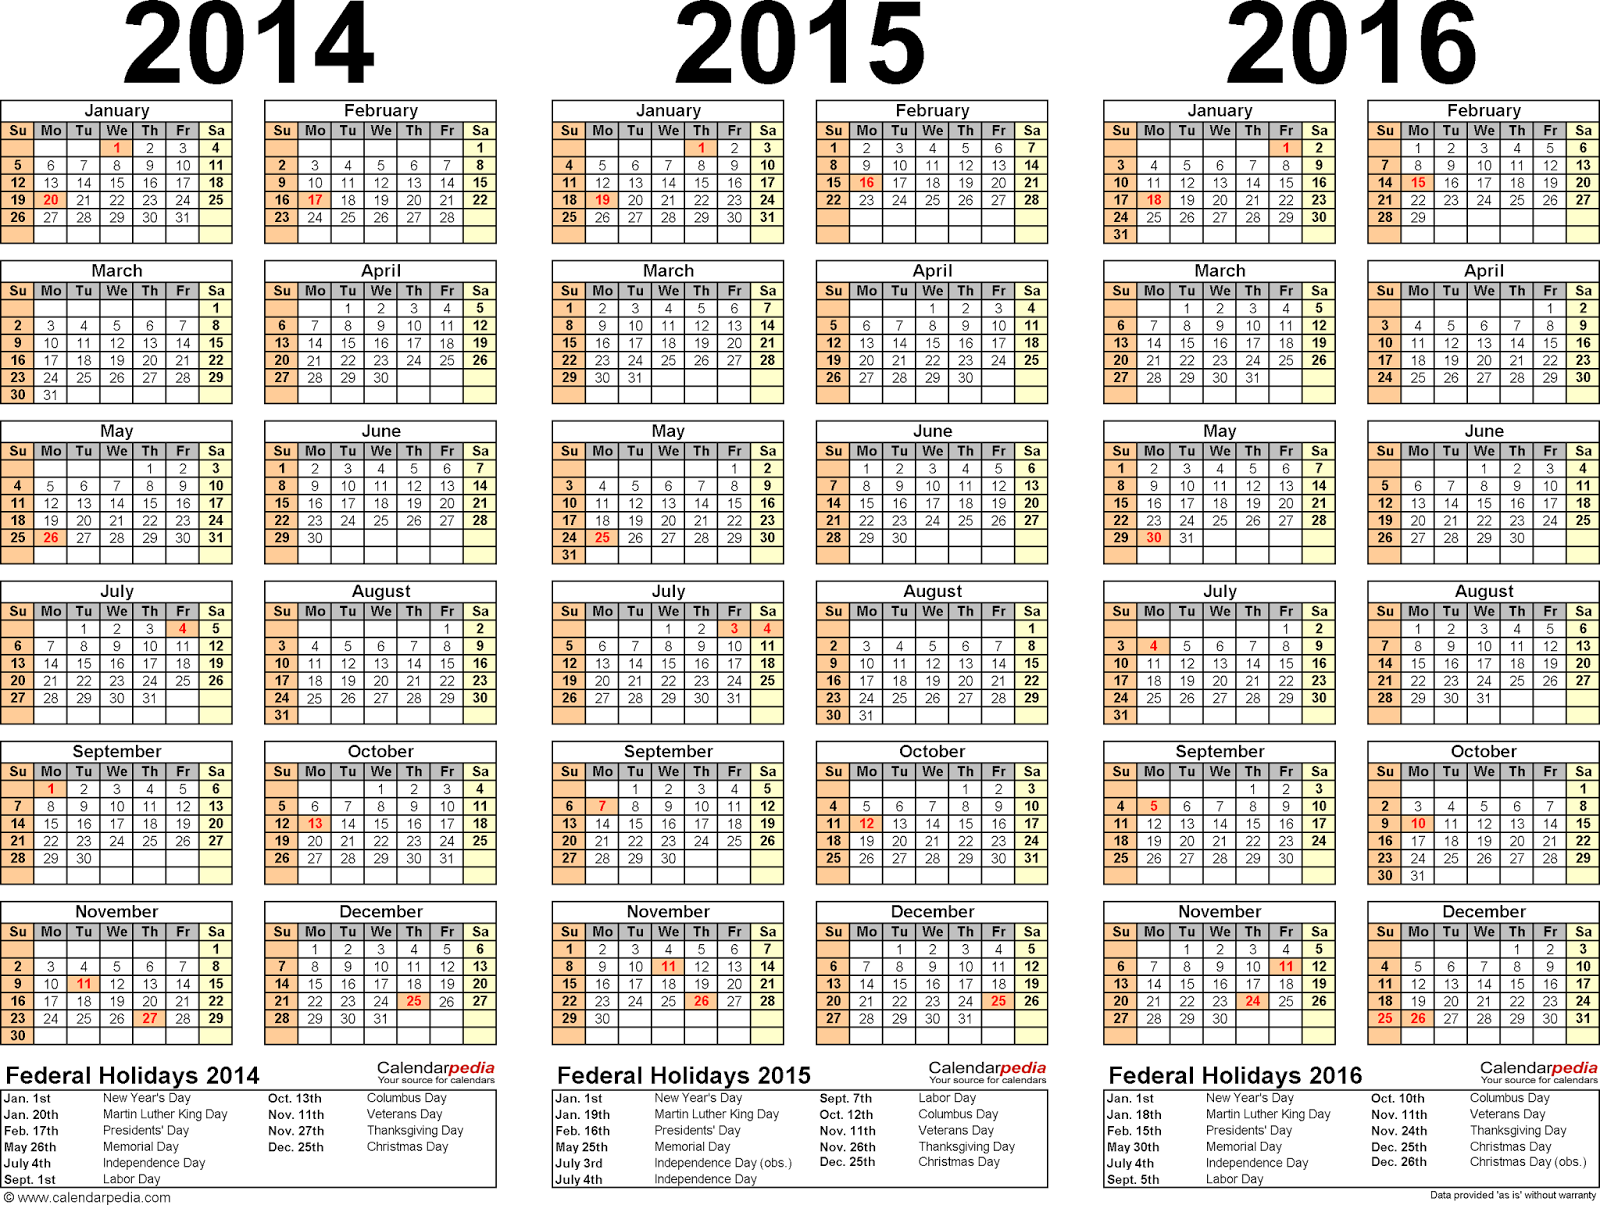 ... 2014 2015 2016 مذكره 2014 2015 2016 three year calendars